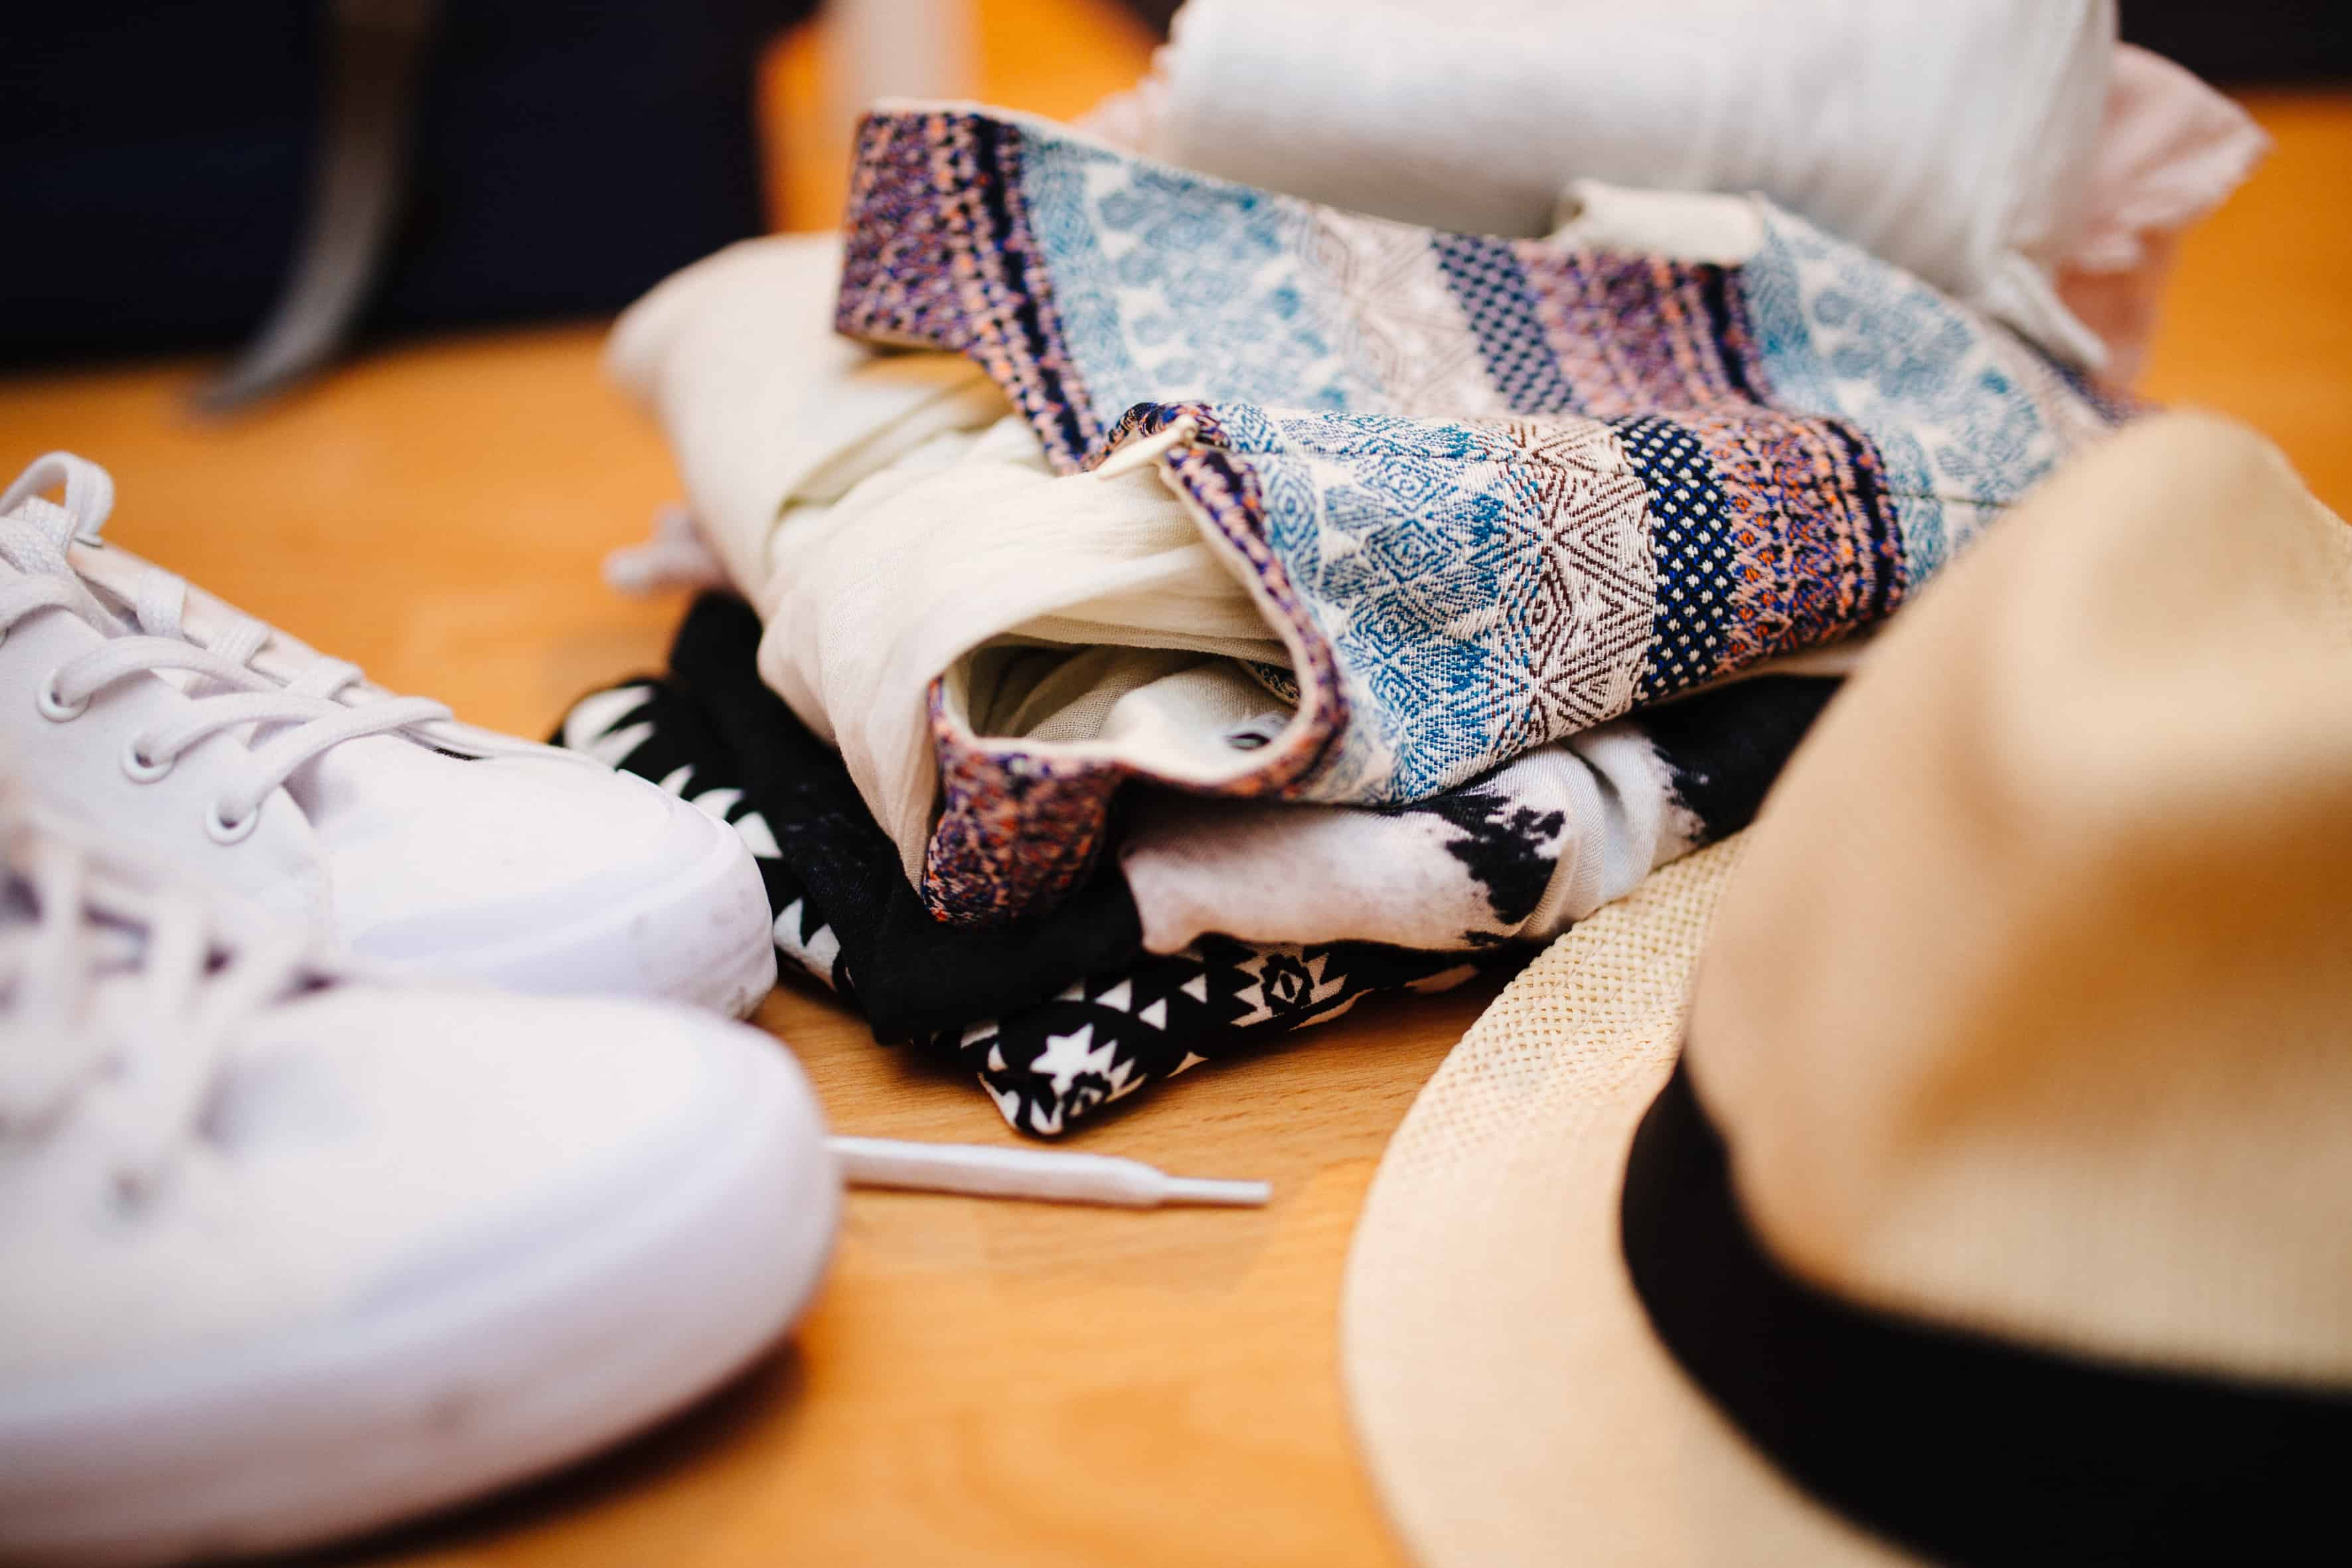 Clothes and accessories on a table